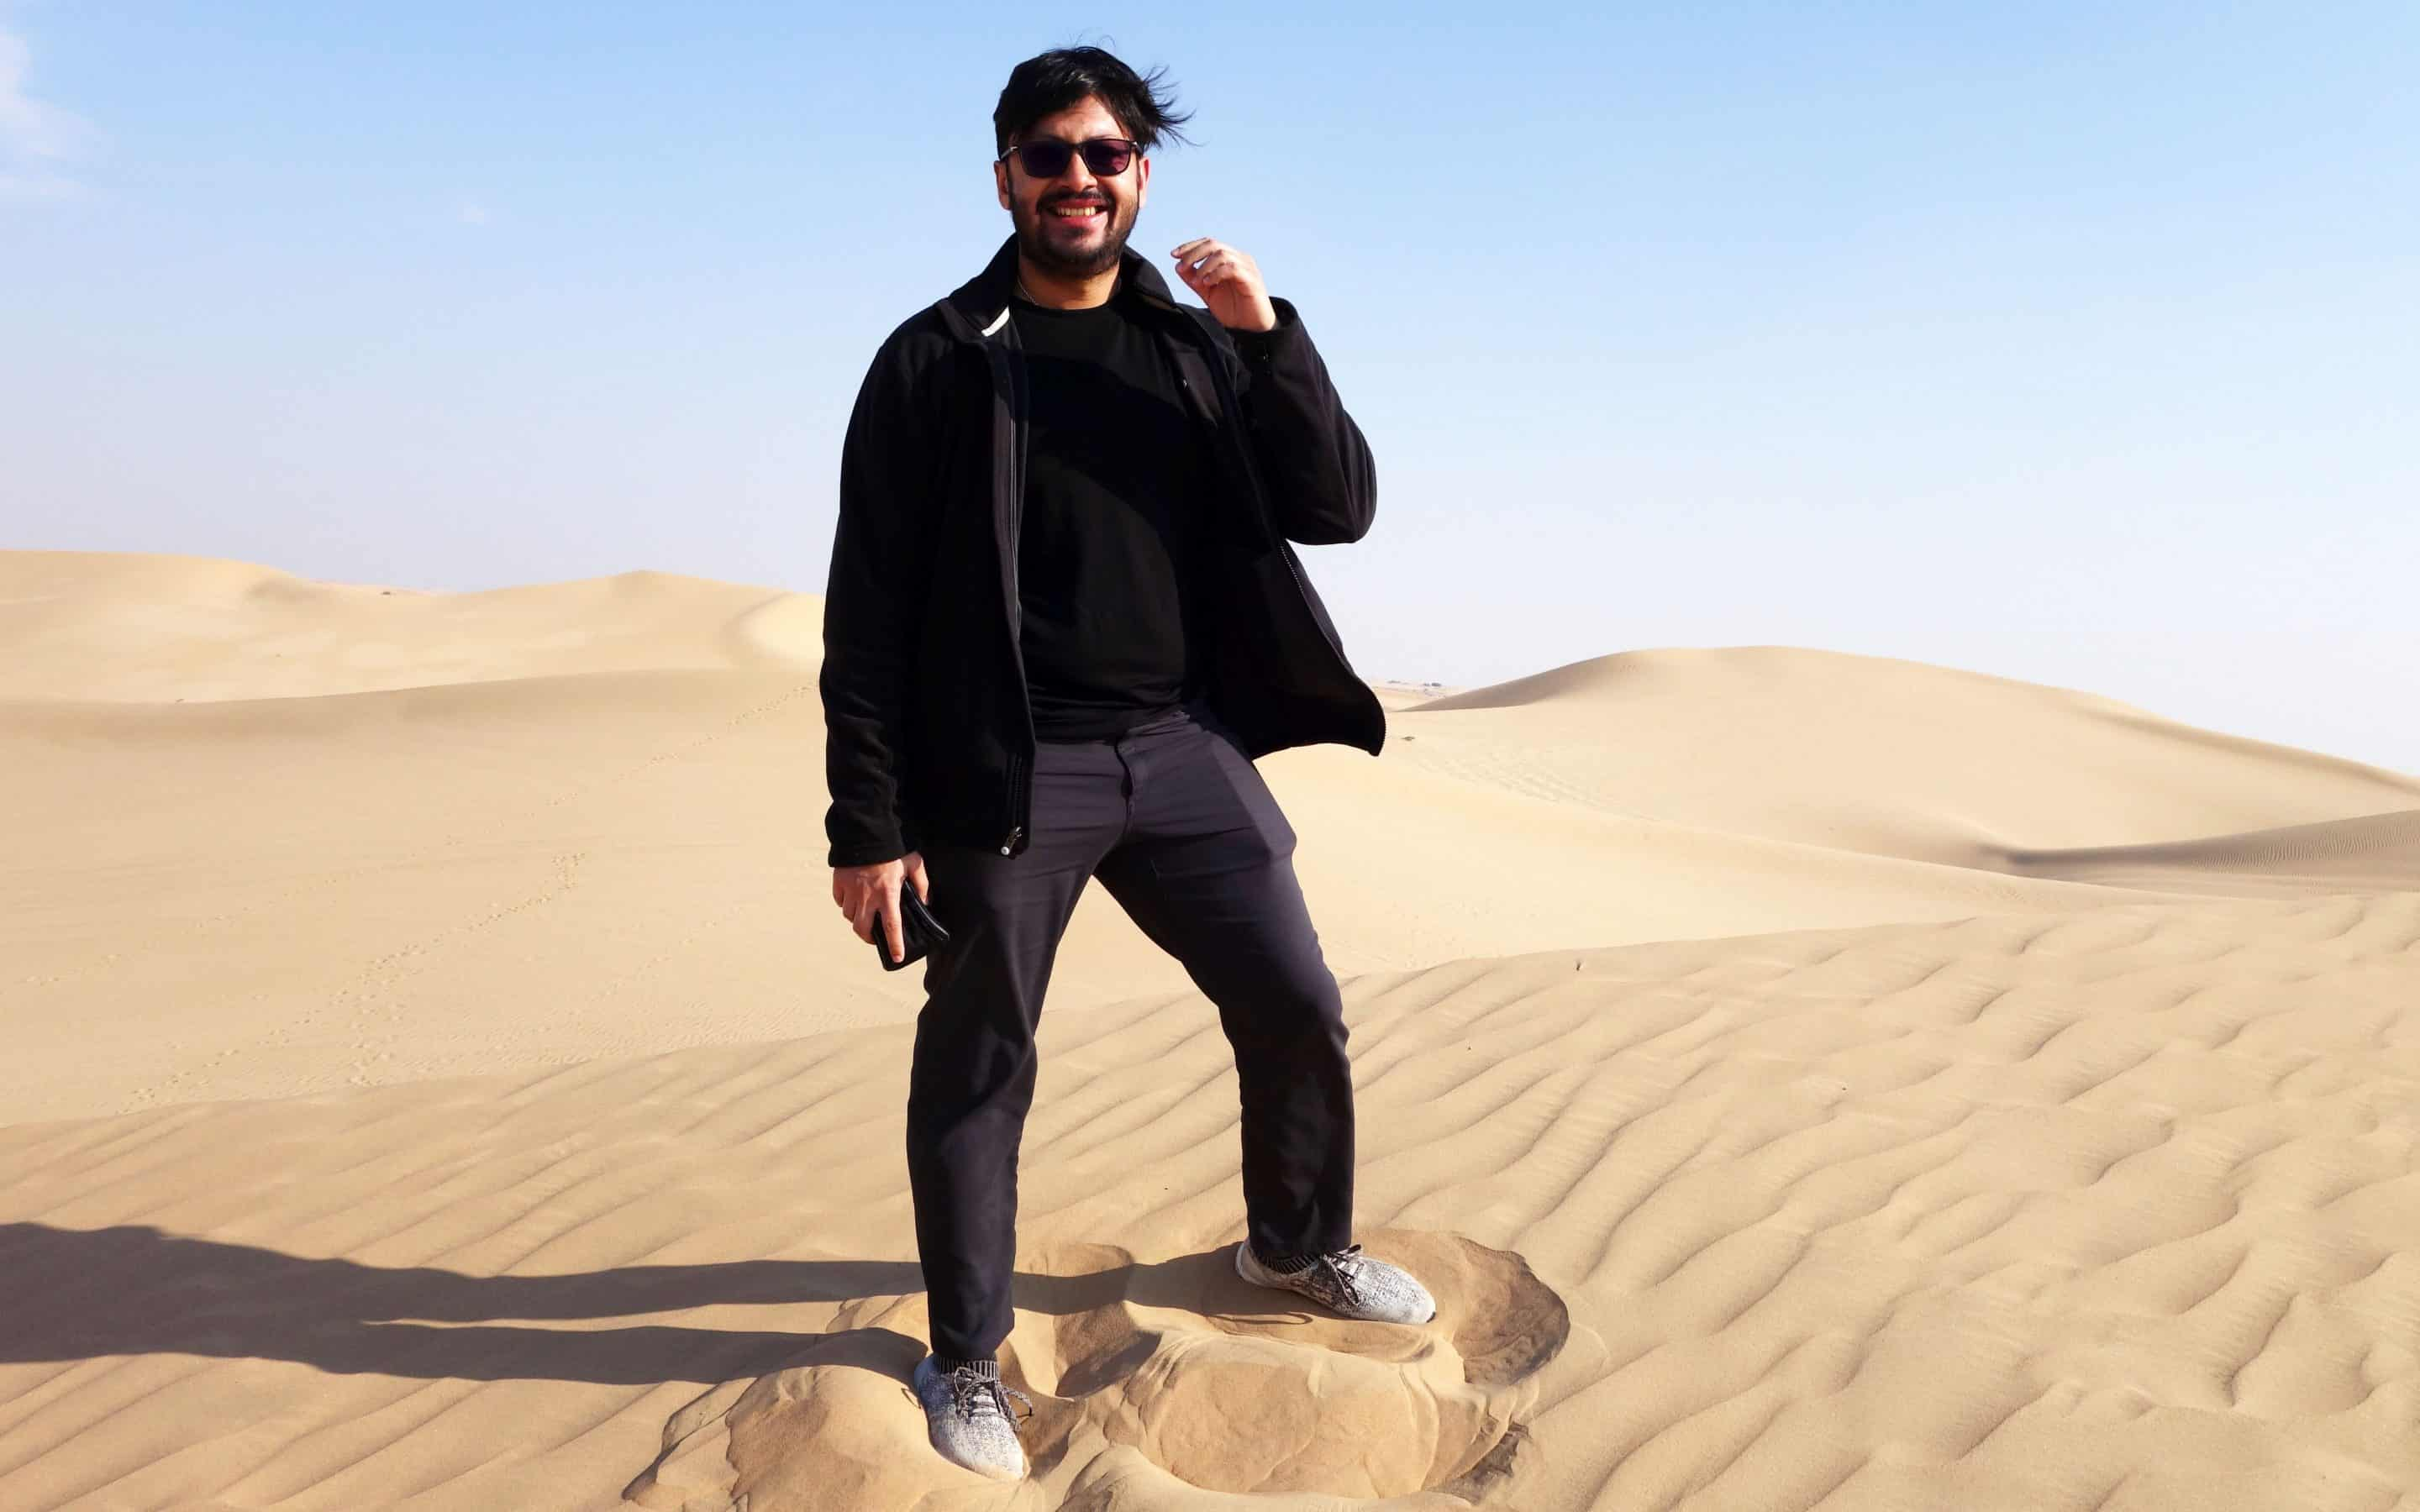 Ranajay standing in a desert looking all cool